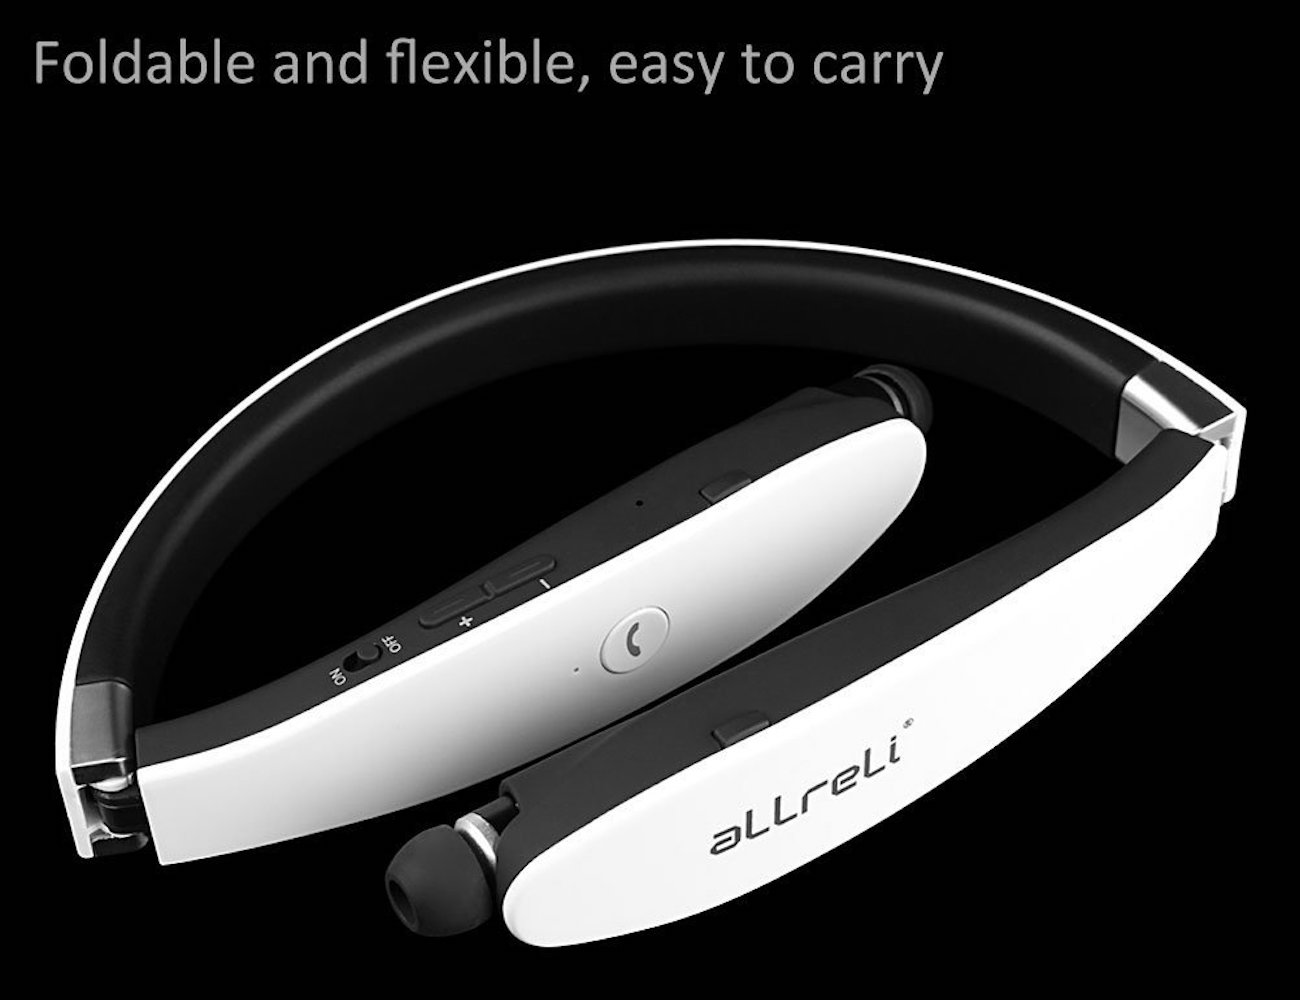 aLLreLi Bluetooth 4.0 Soba Retractable Wireless Stereo Headset